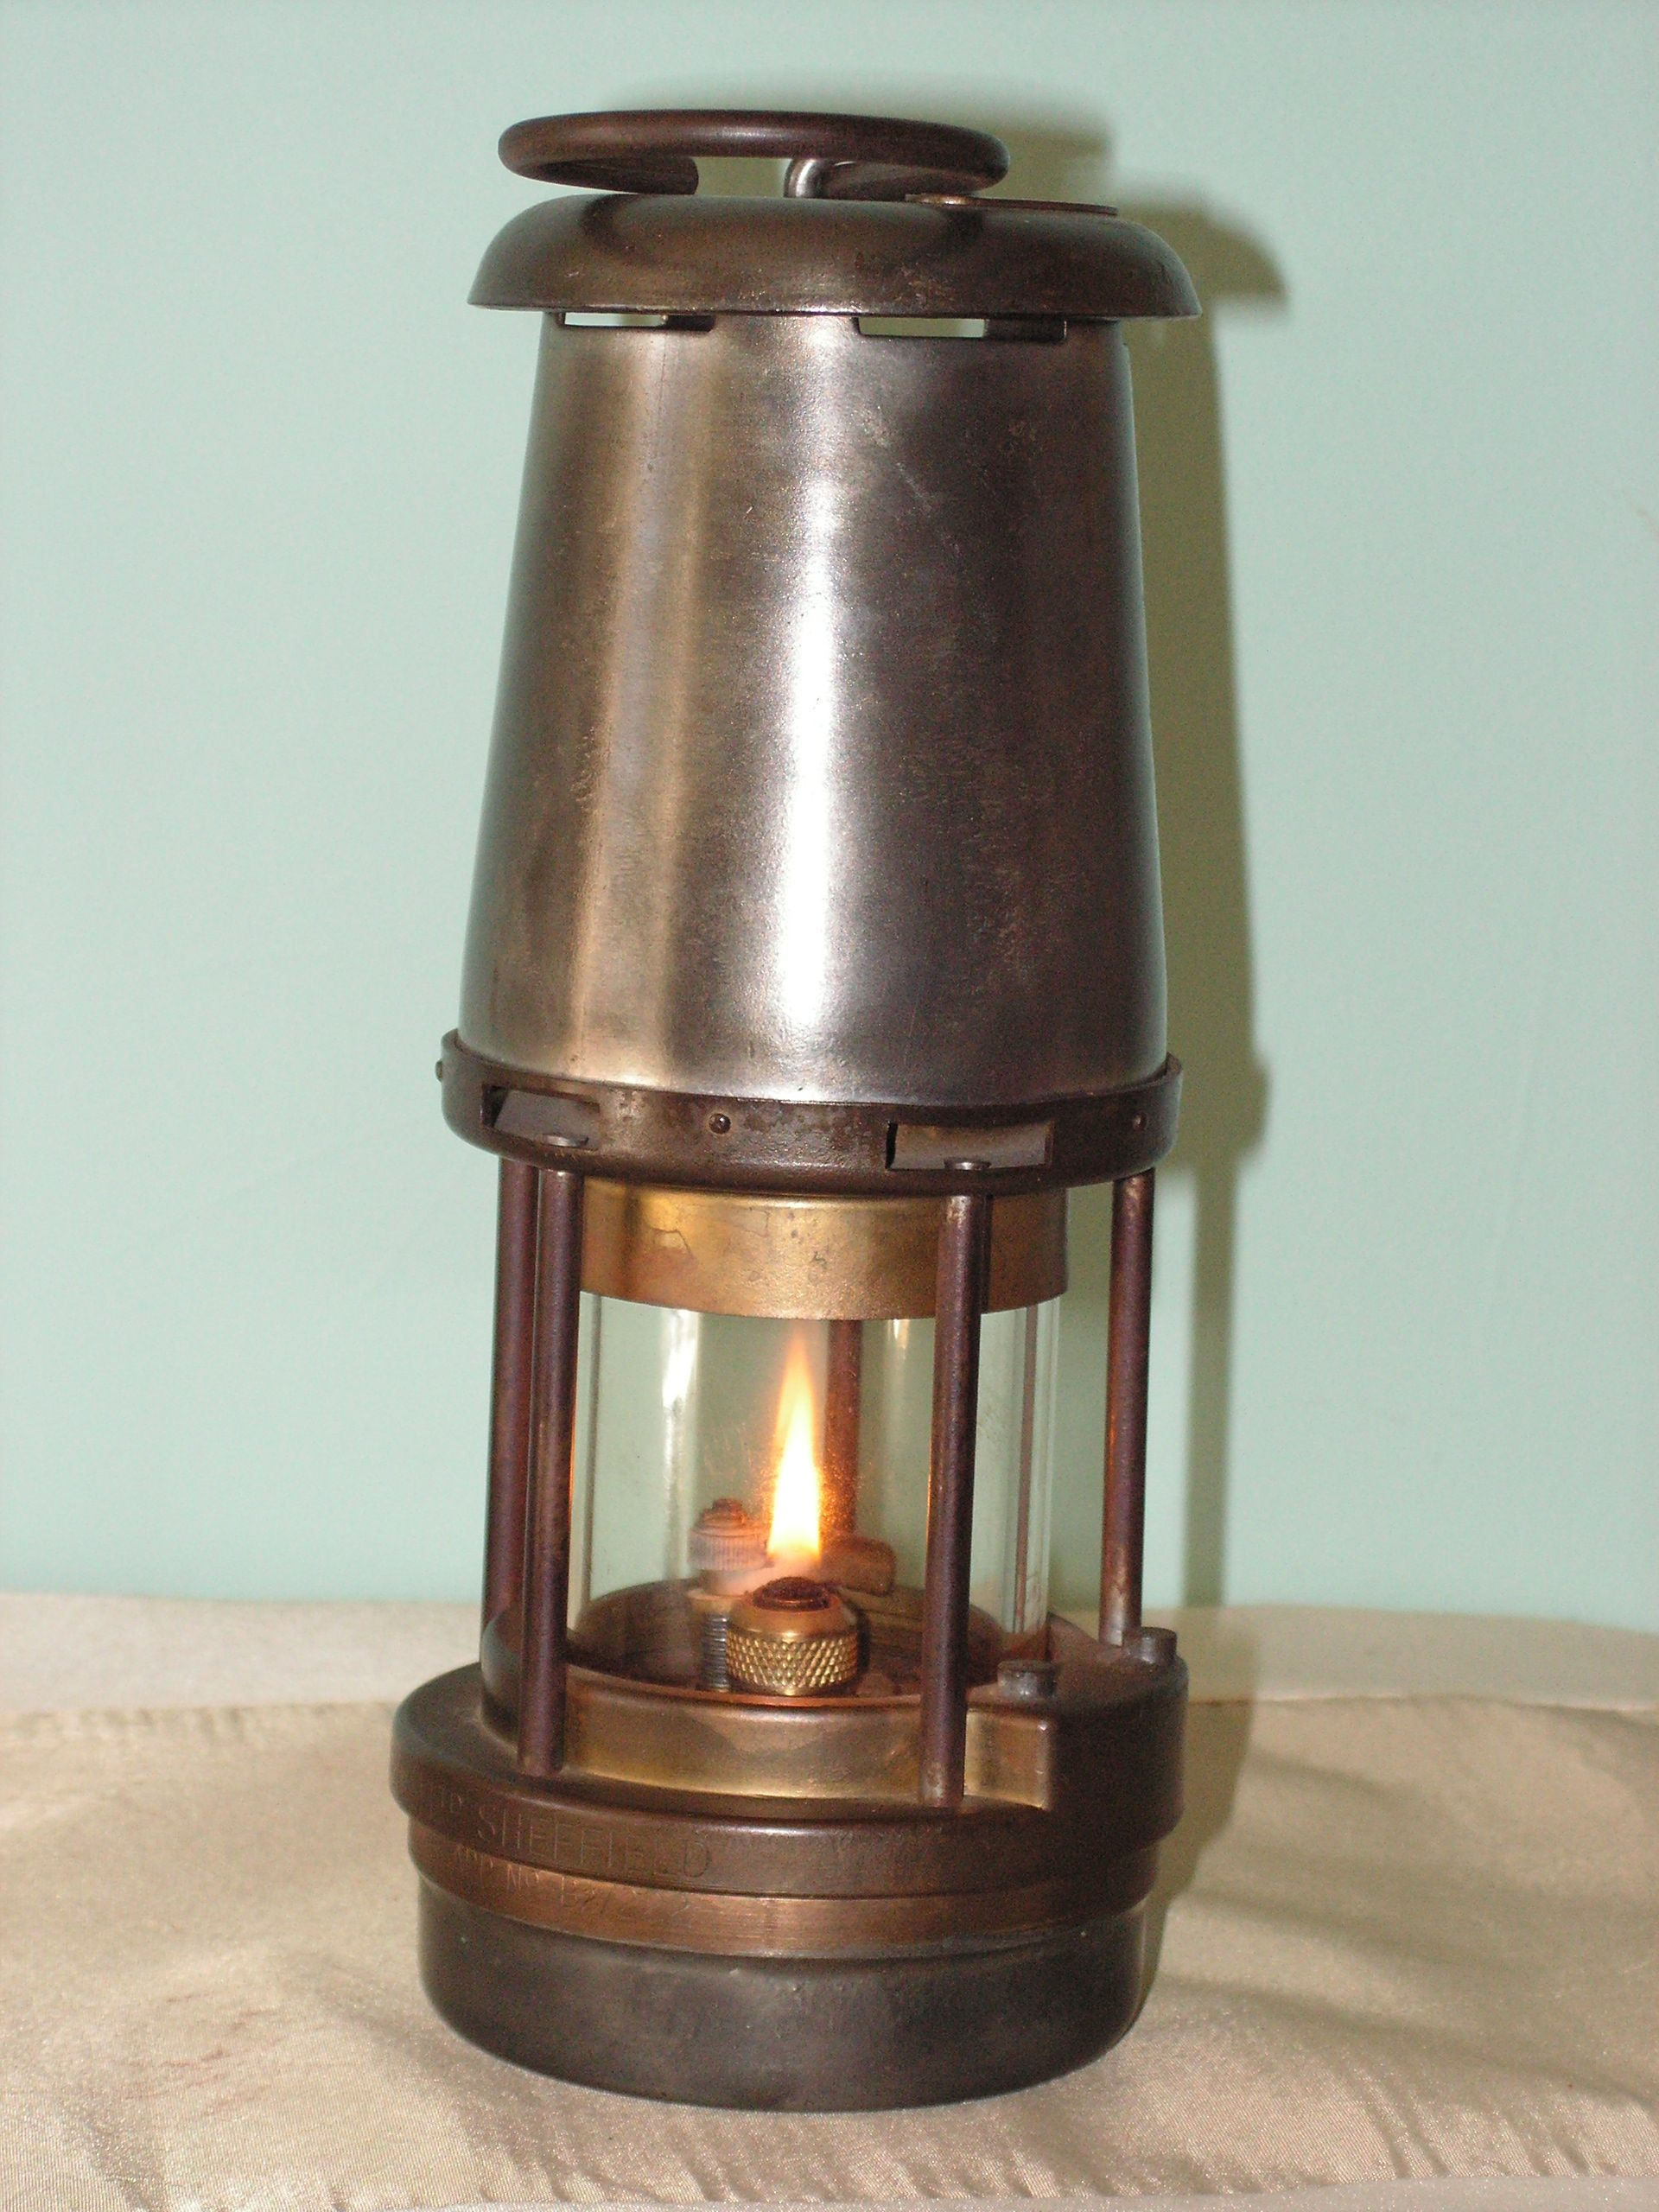 Wolf Lamp By The Wolf Safety Lamp Co Wm Maurice Ltd Sheffield Flame Is A Little Too High With Images Lantern Candle Holders Lamp Oil Lamps